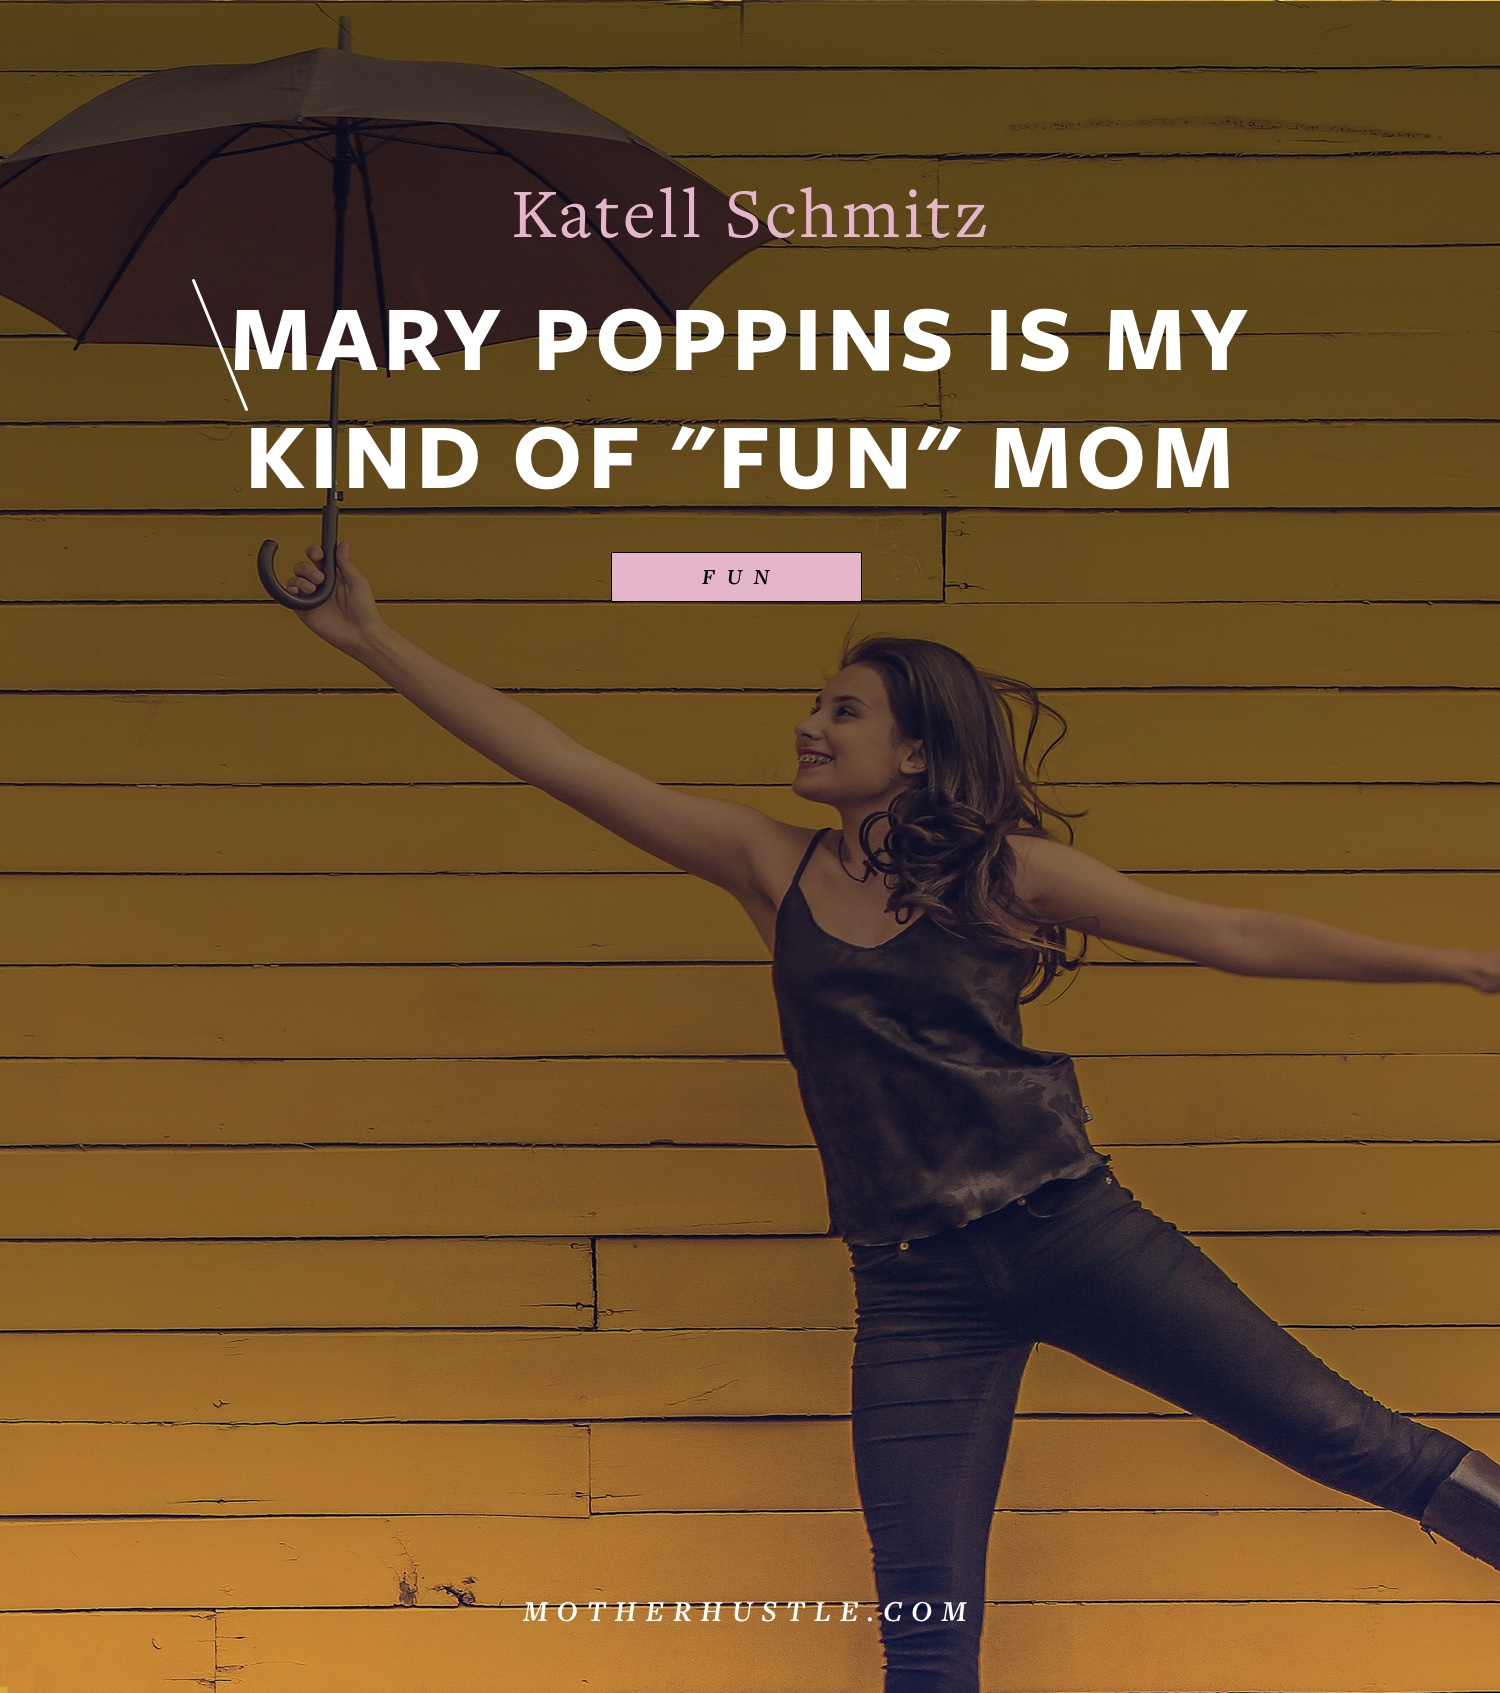 Mary Poppins Is My Kind of Fun Mom - by Katell Schmitz for MotherHustle